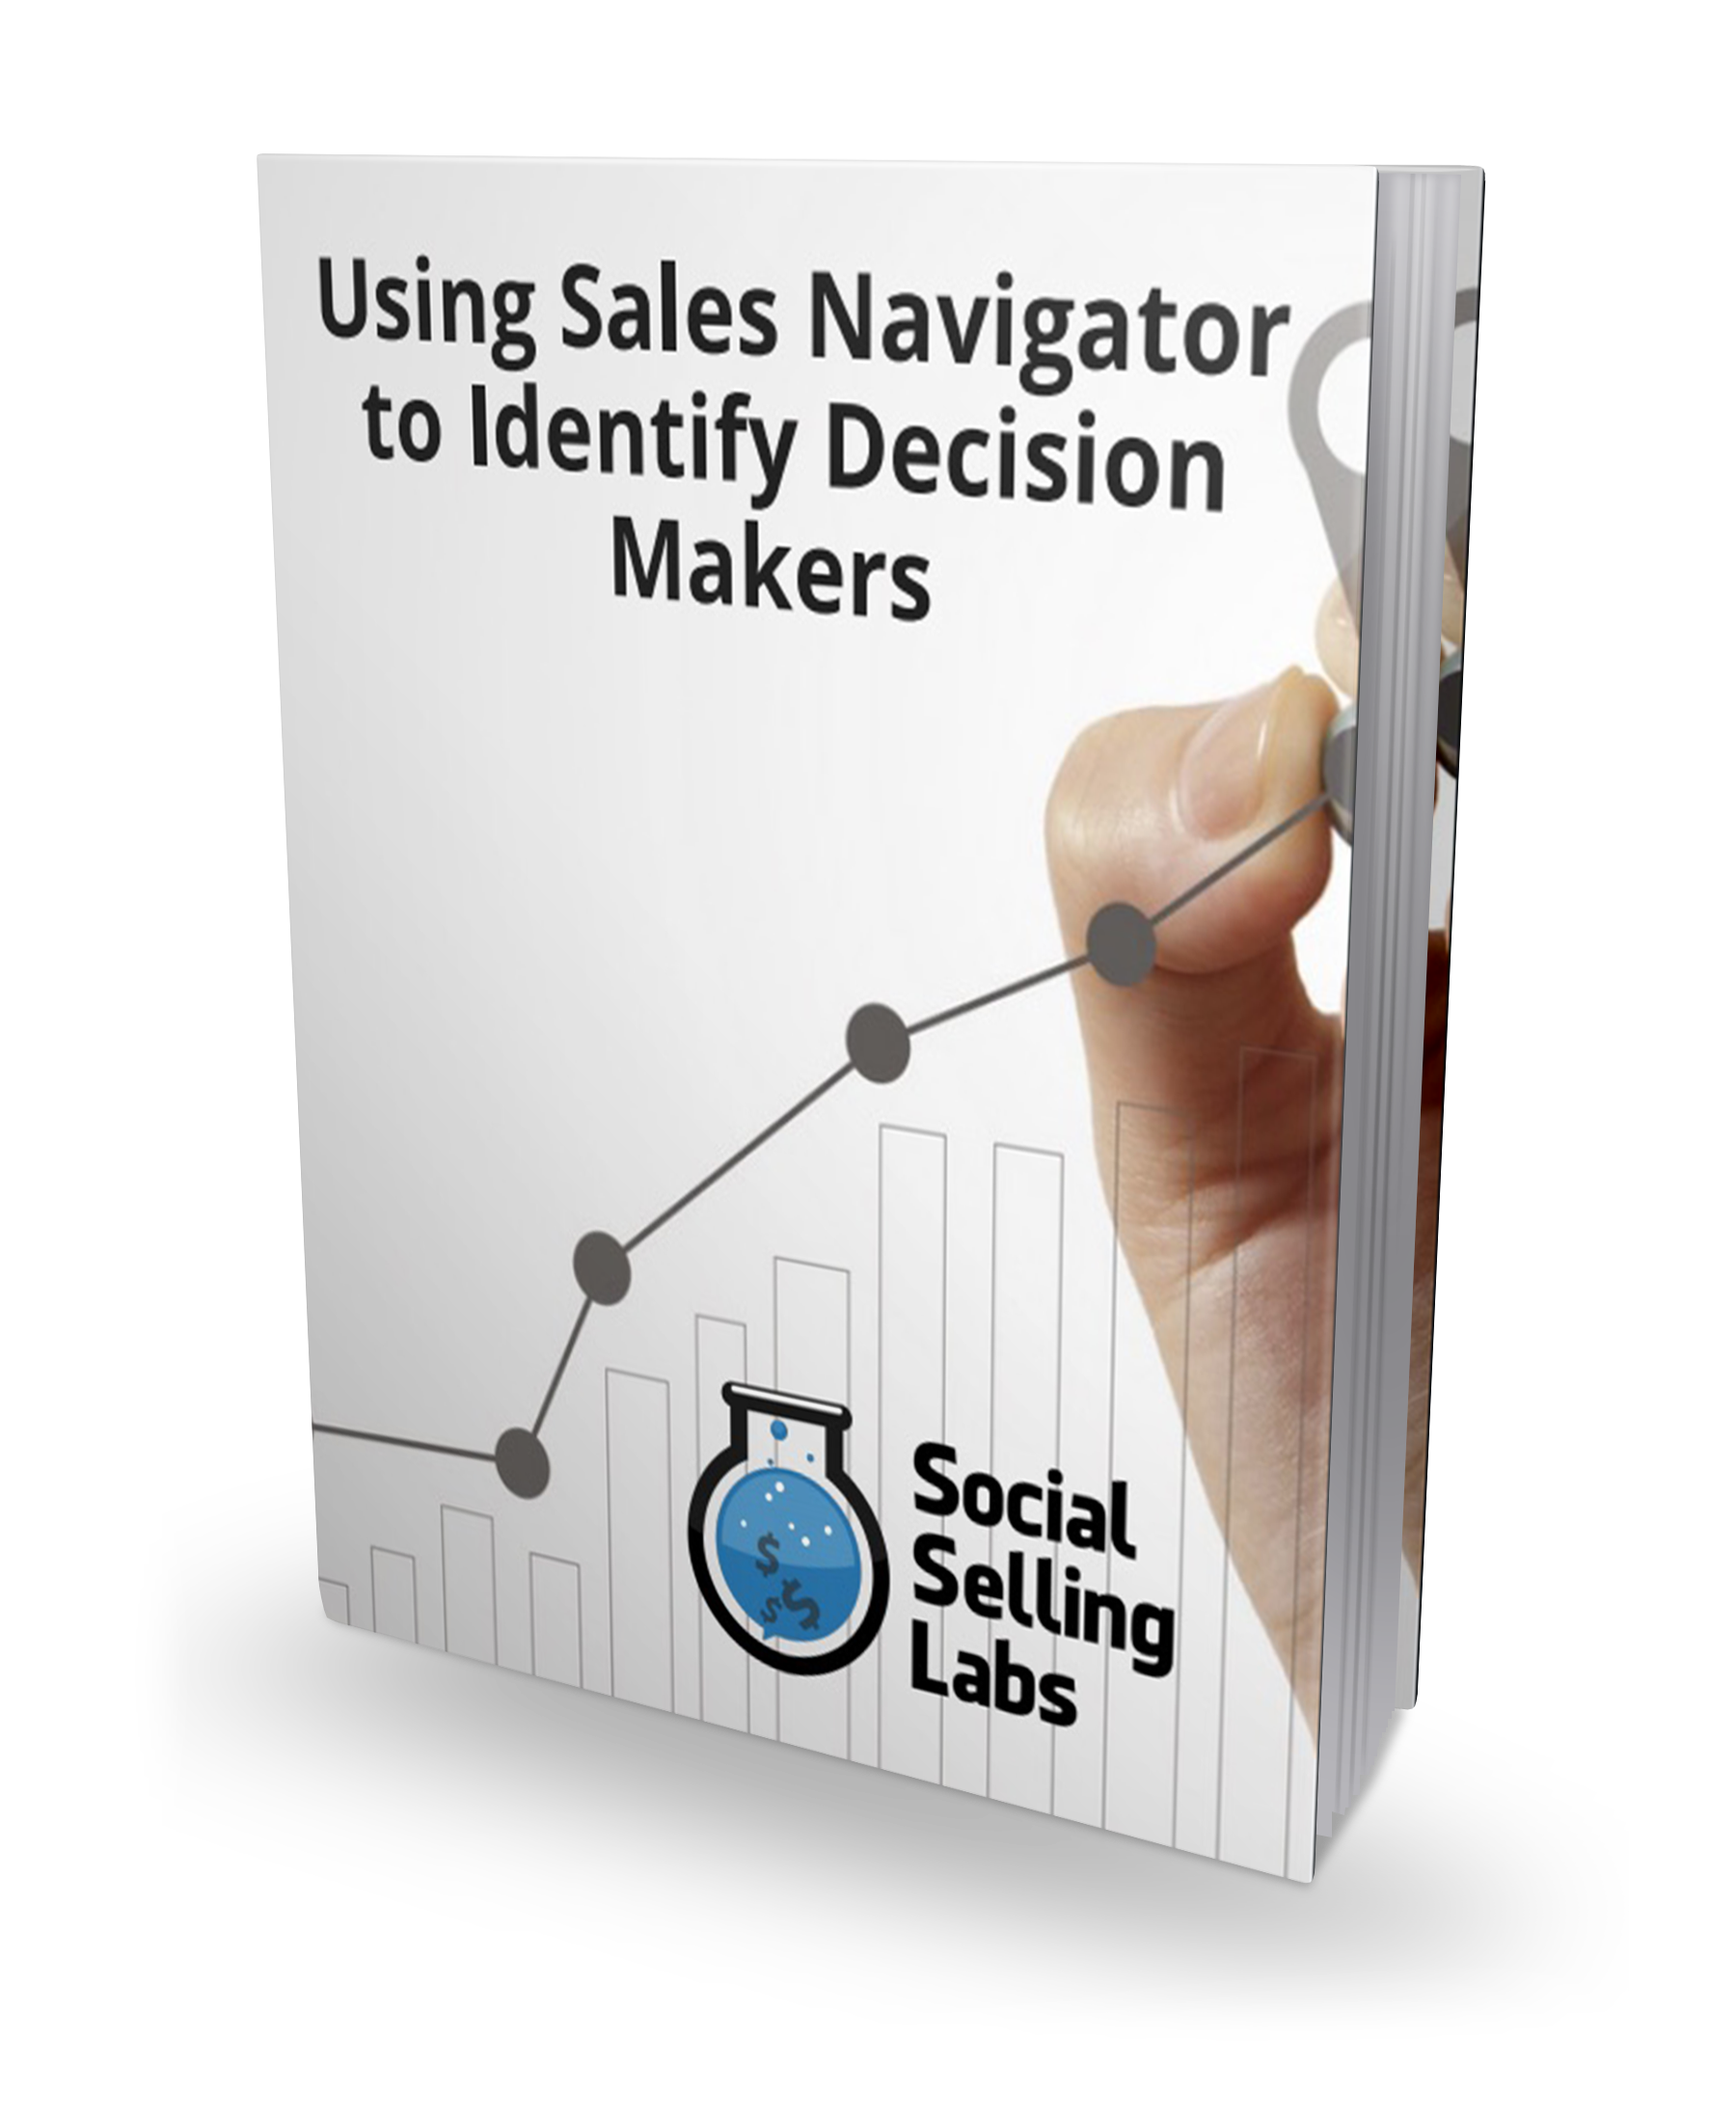 Connecting with Decision Makers with Linkedin Sales Navigator